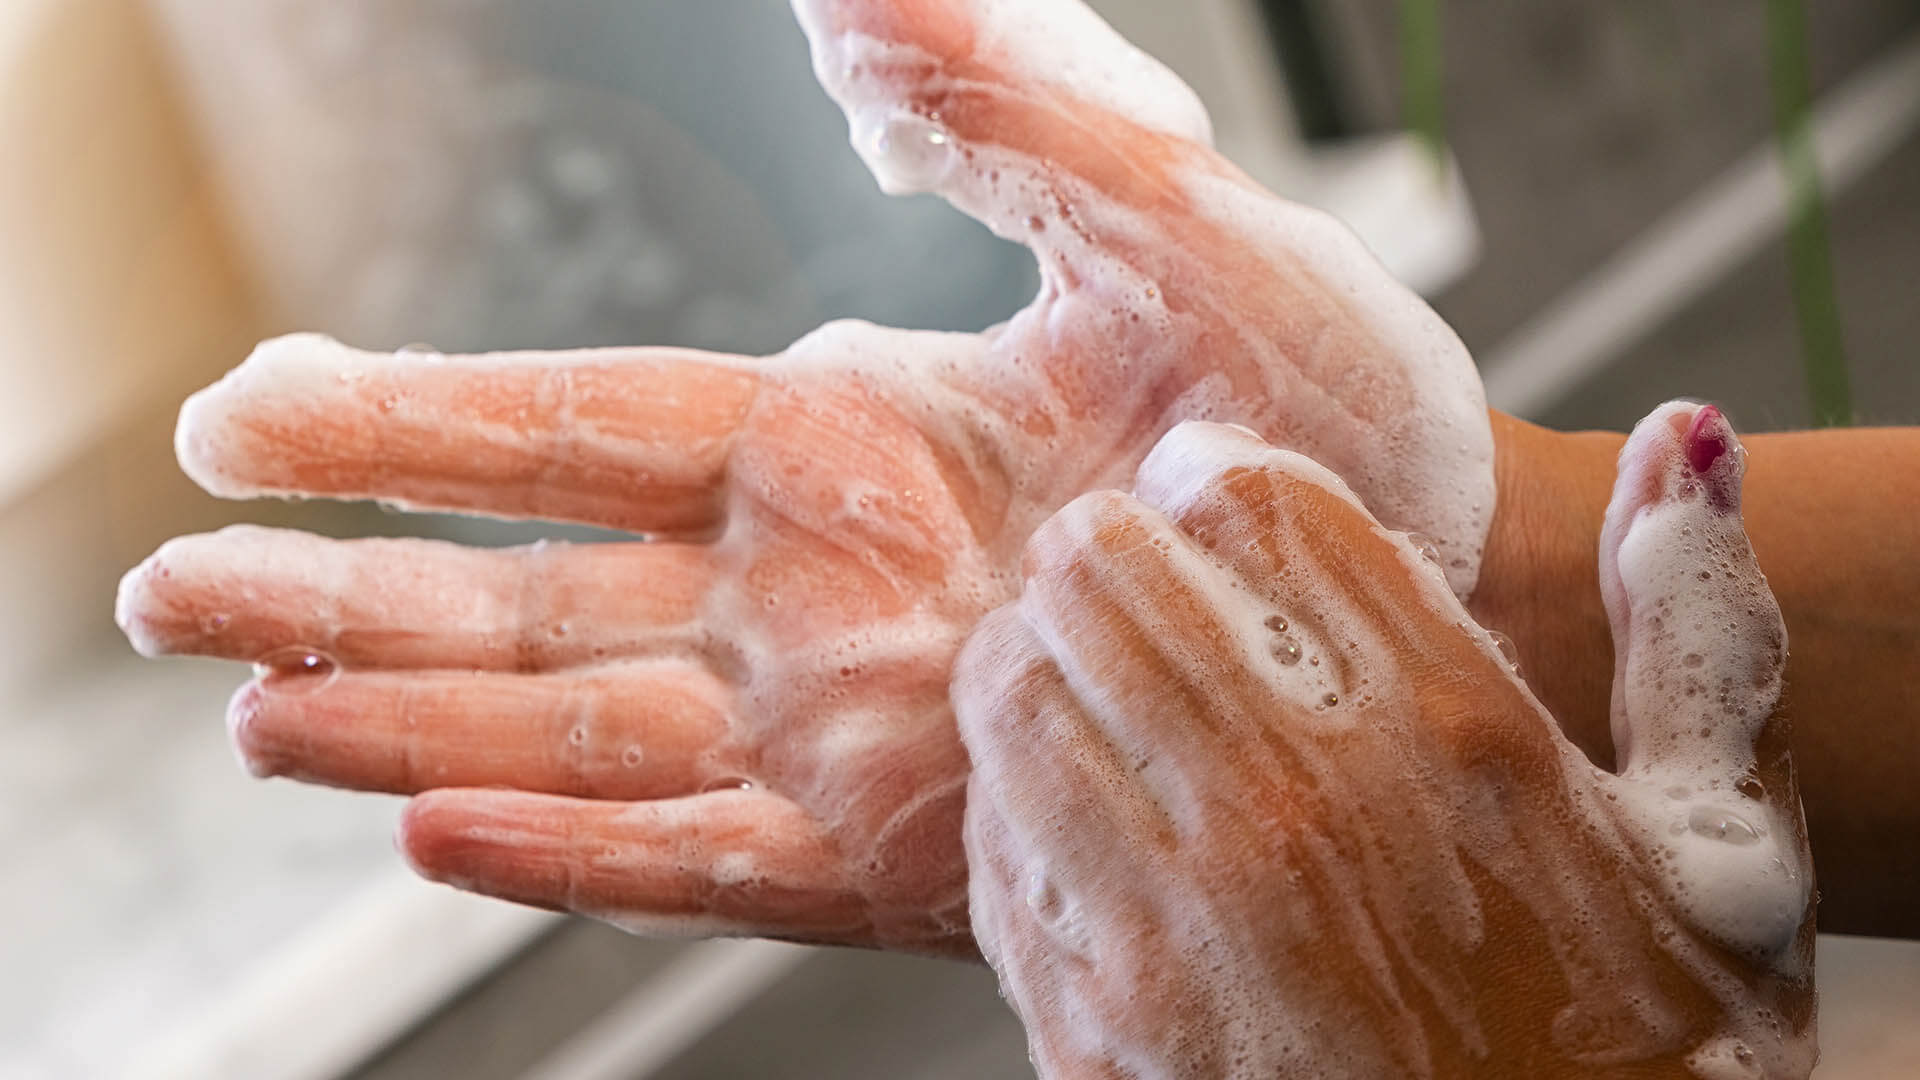 Sulfates in personal care products